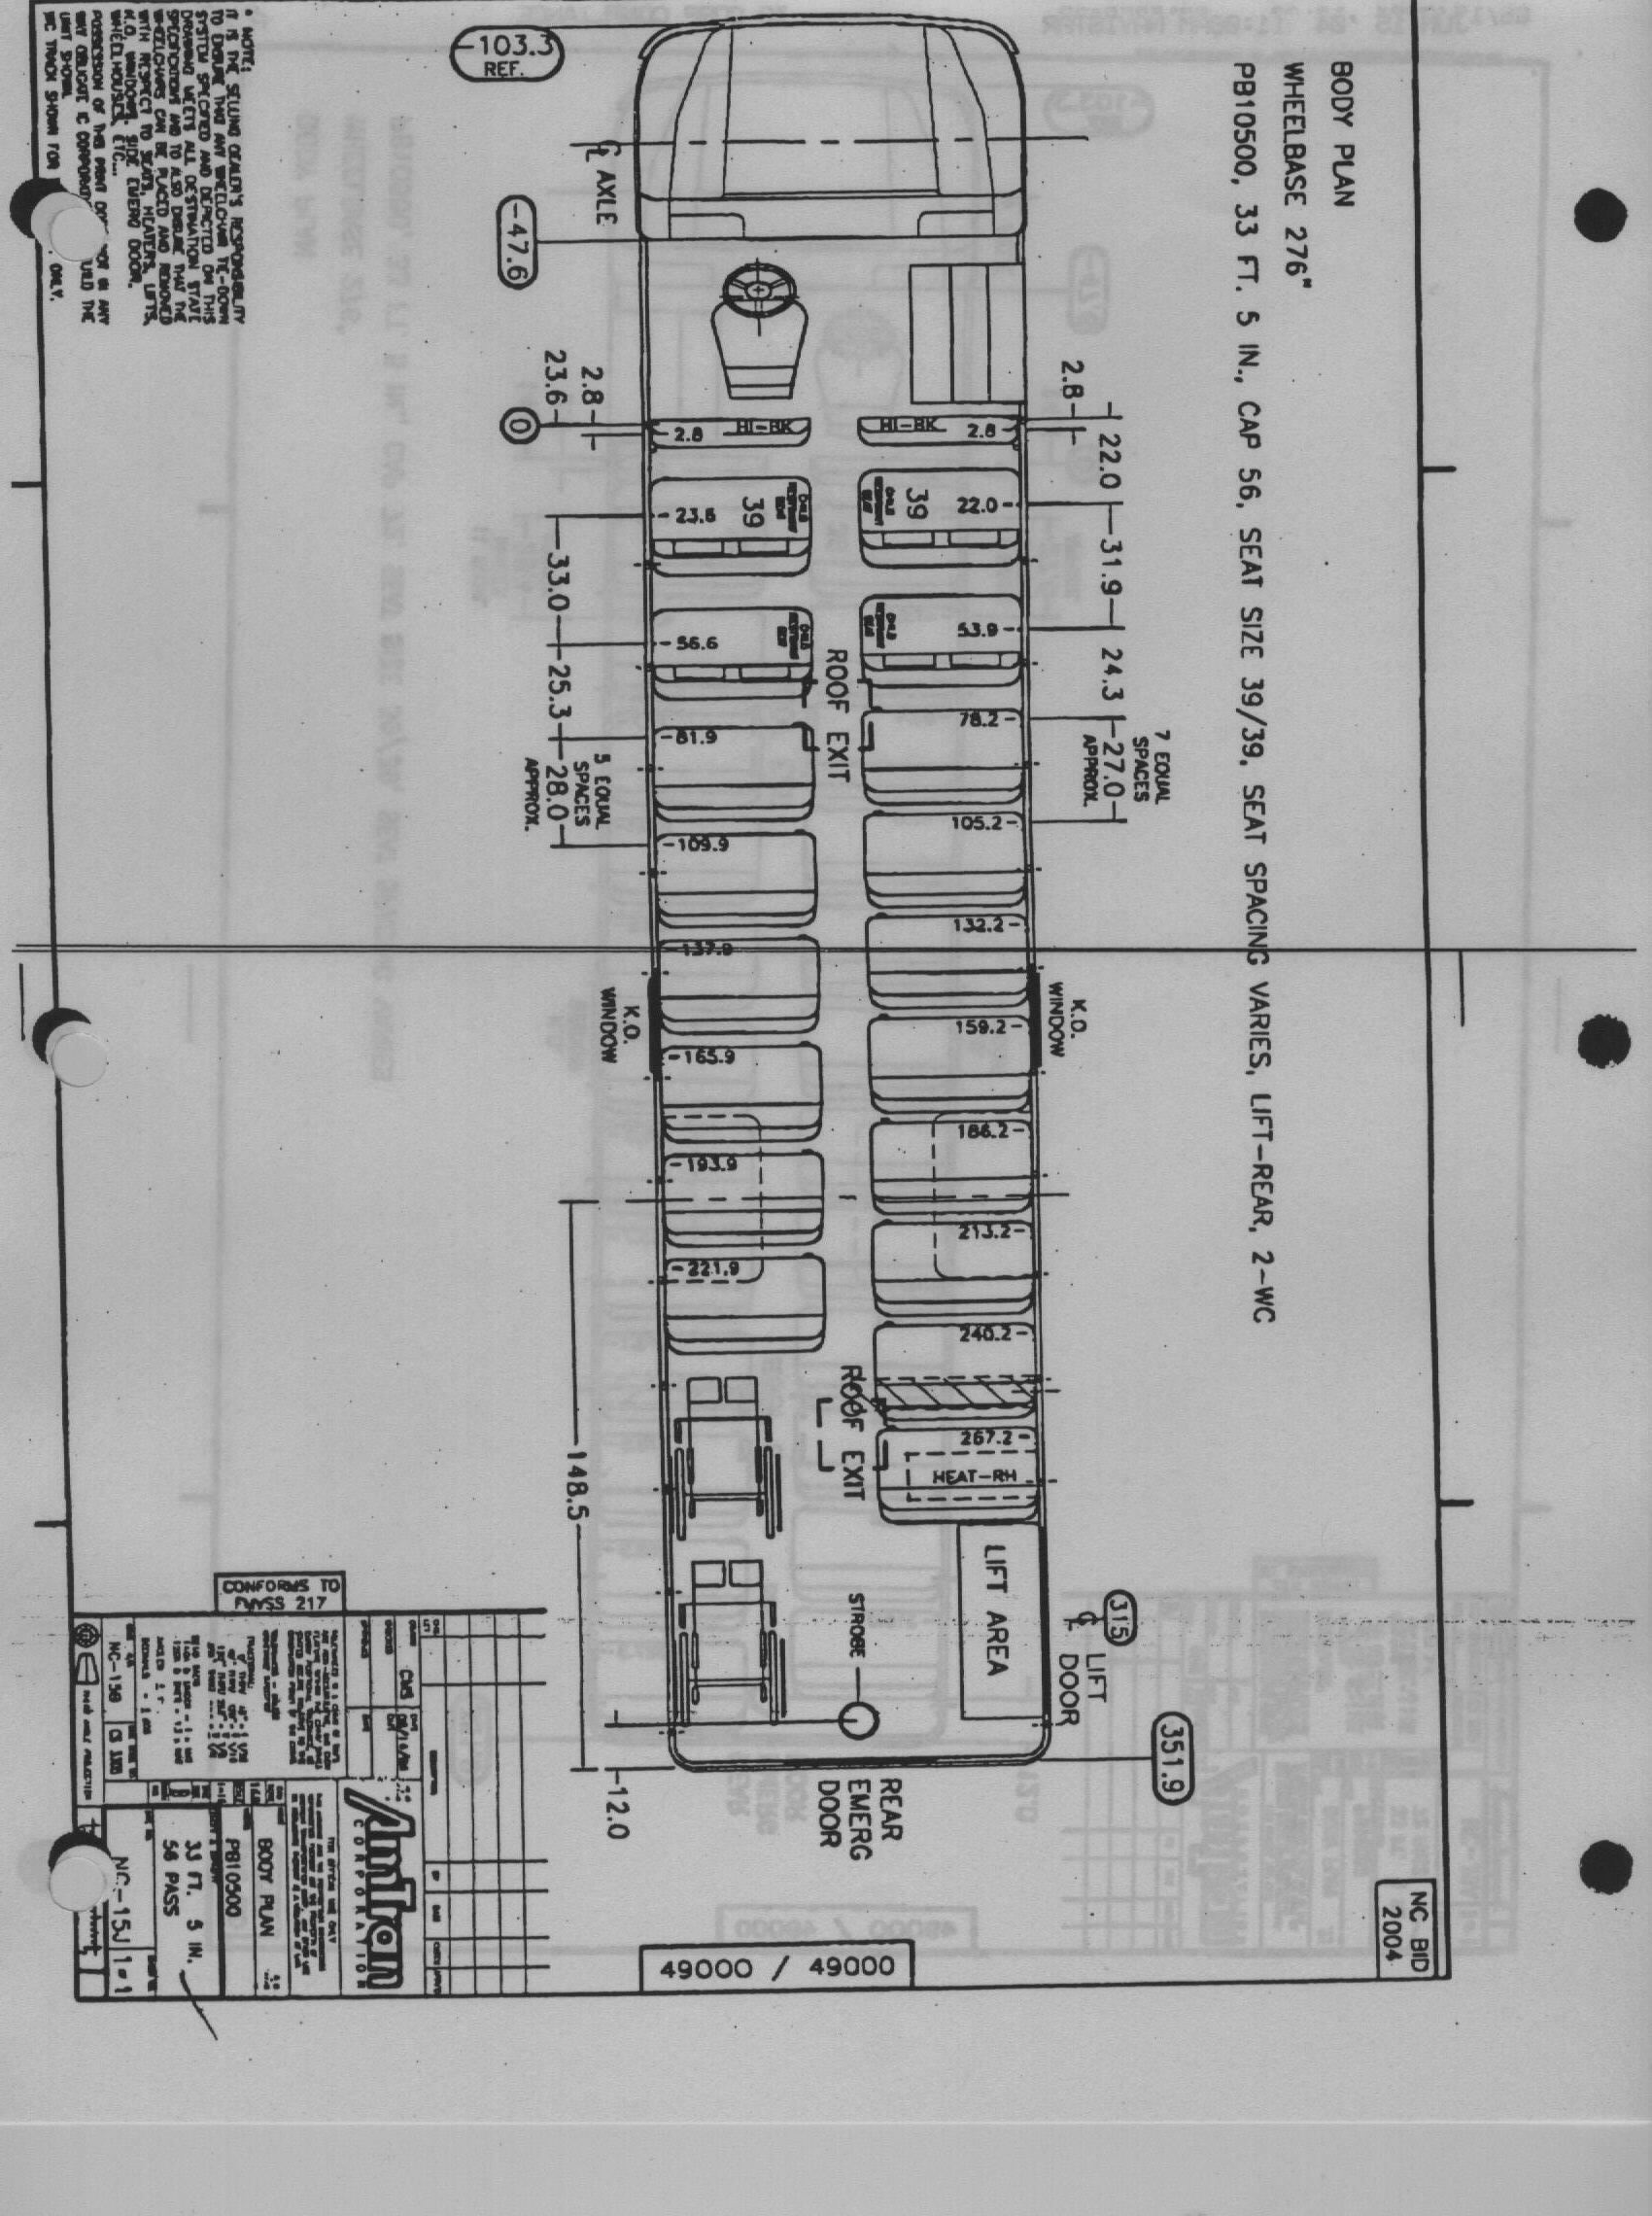 Wiring Diagram For Thomas Bus : 29 Wiring Diagram Images